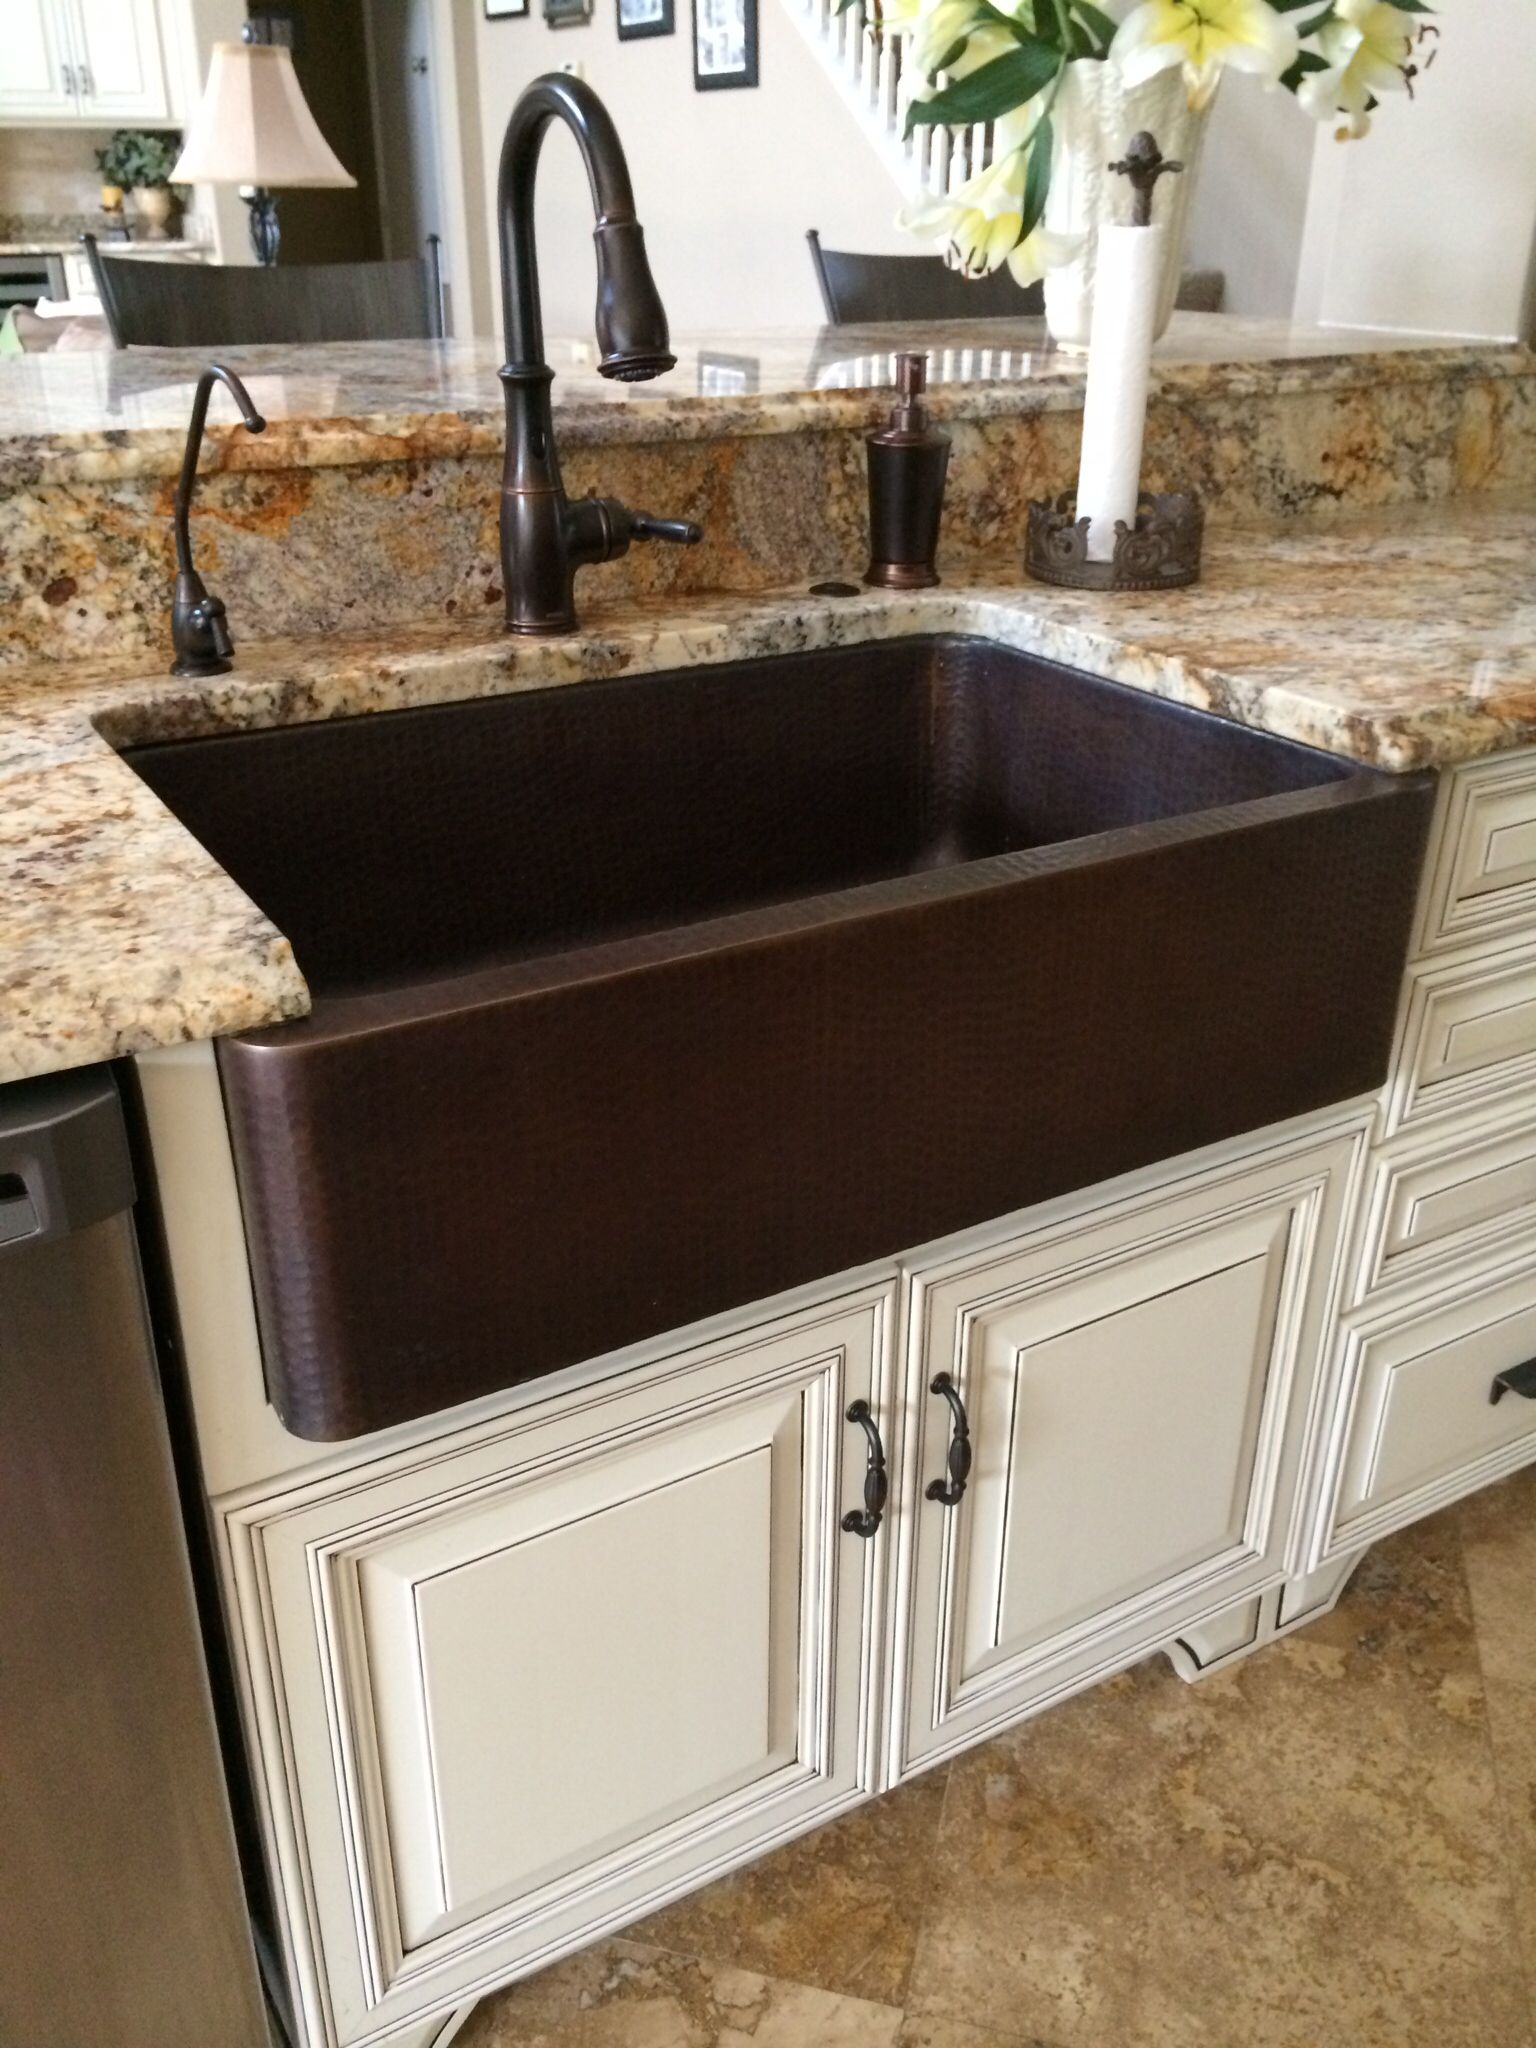 Hammered Copper Farm Sink Moen Oil Rubbed Bronze Touch Less